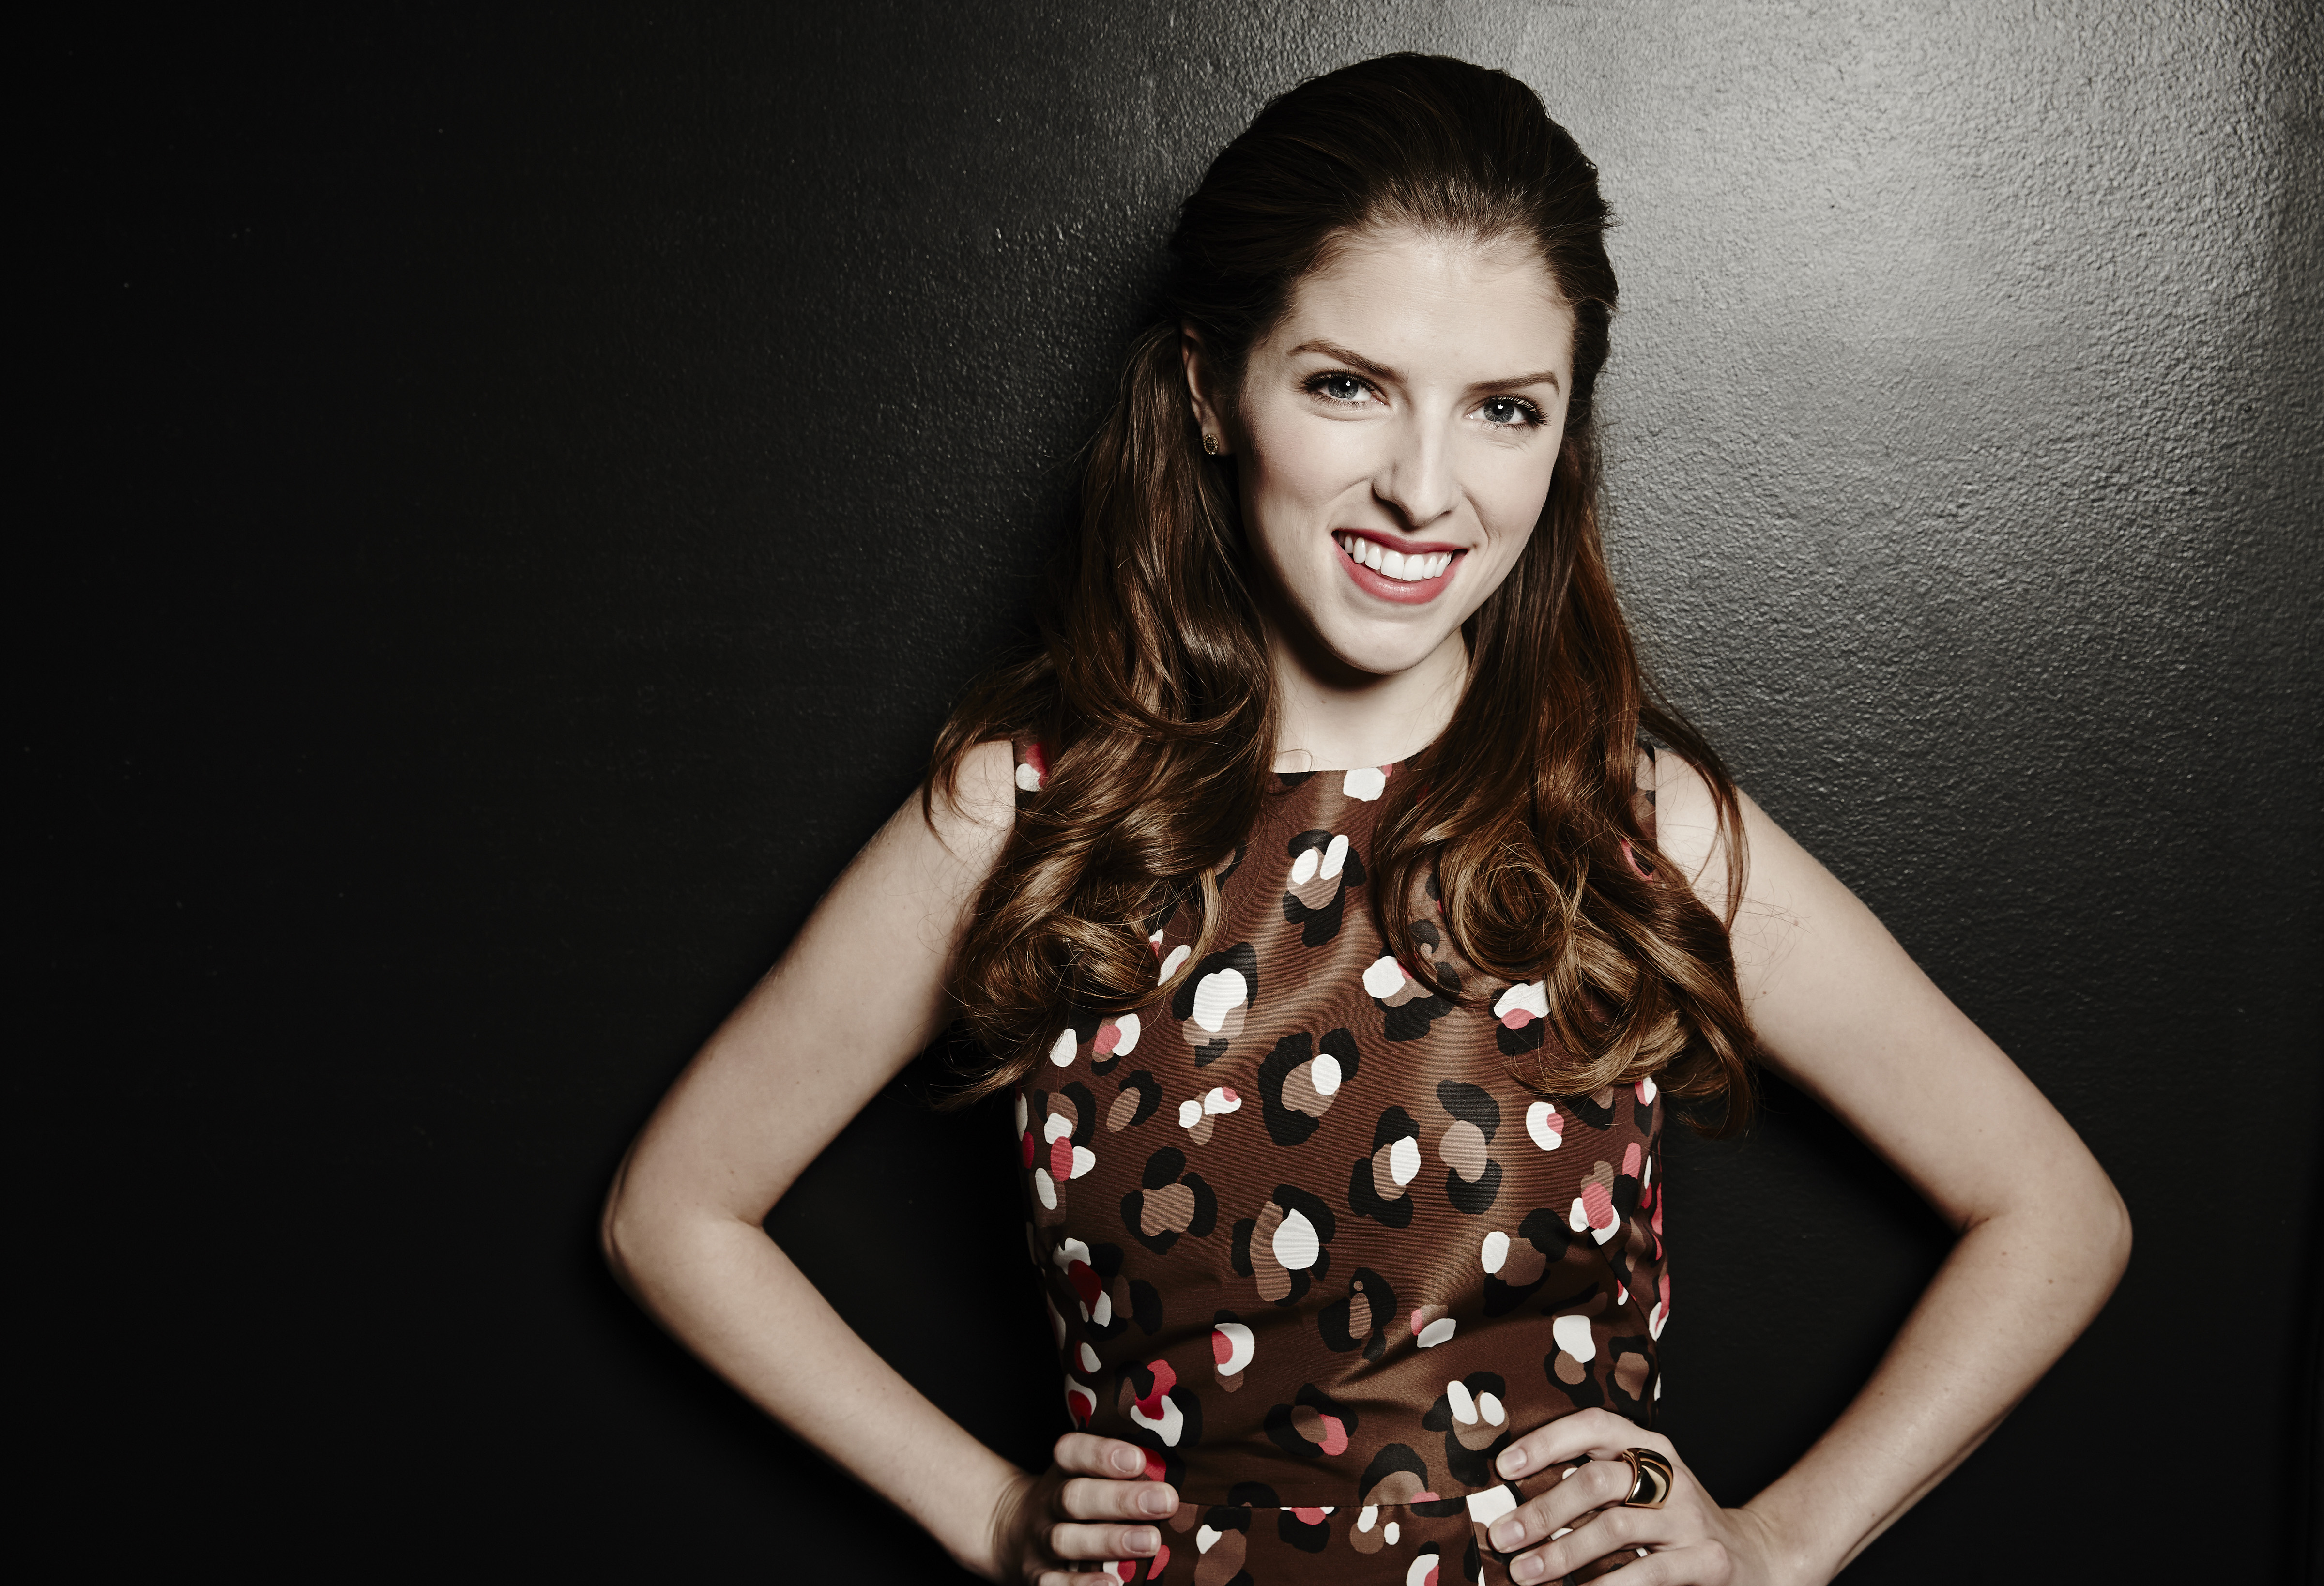 Anna Kendrick is down to play Squirrel Girl, if Marvel ever gets around to making the movie